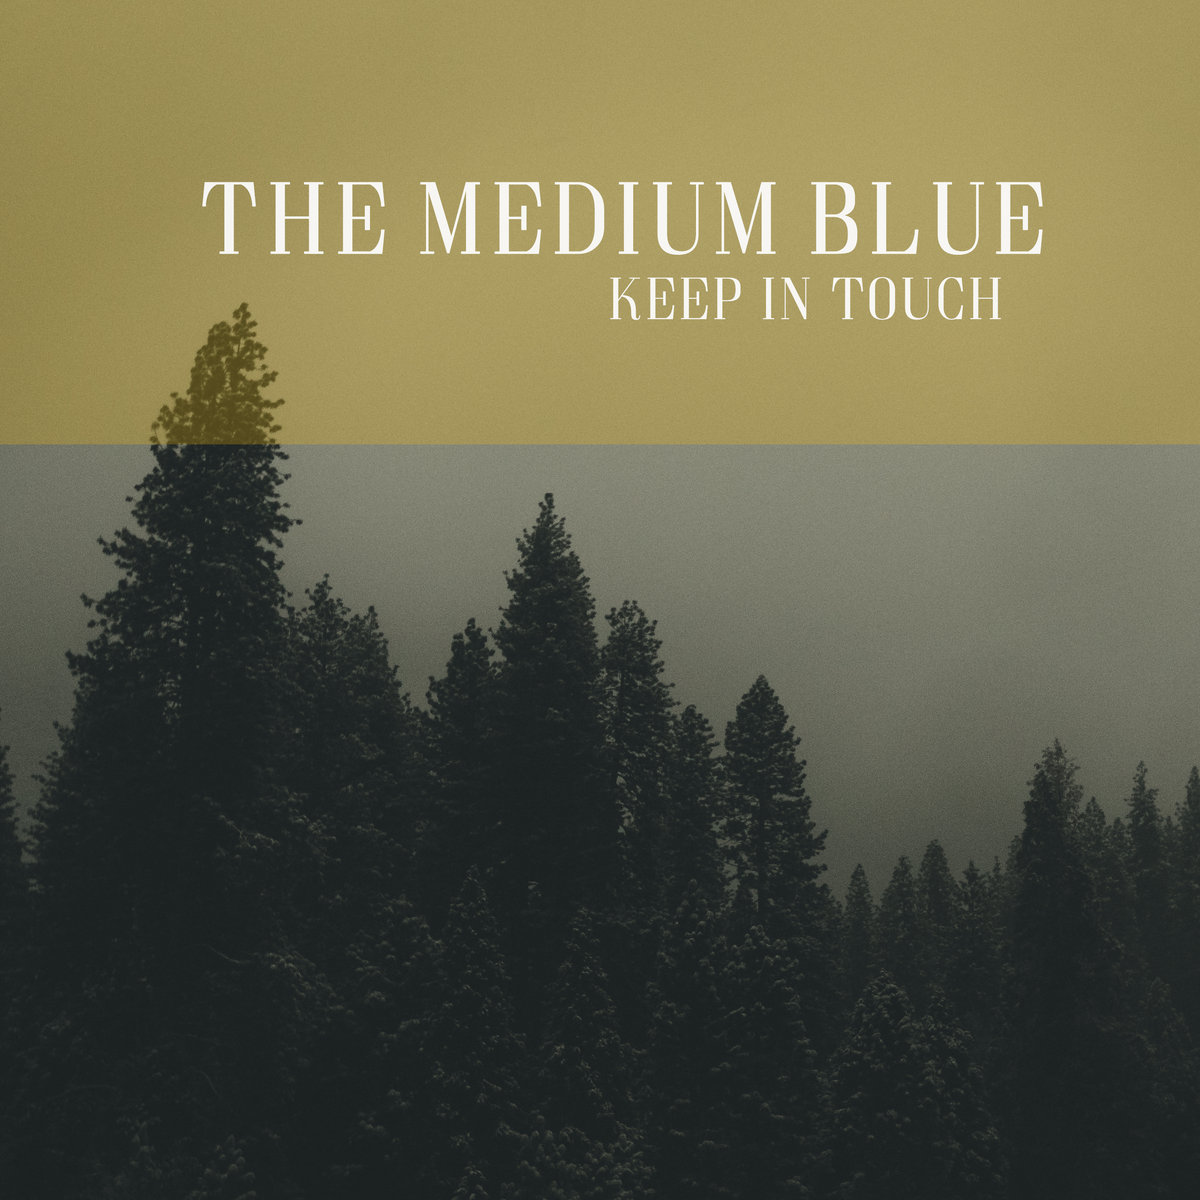 KEEP IN TOUCH [Single] by THE MEDIUM BLUE